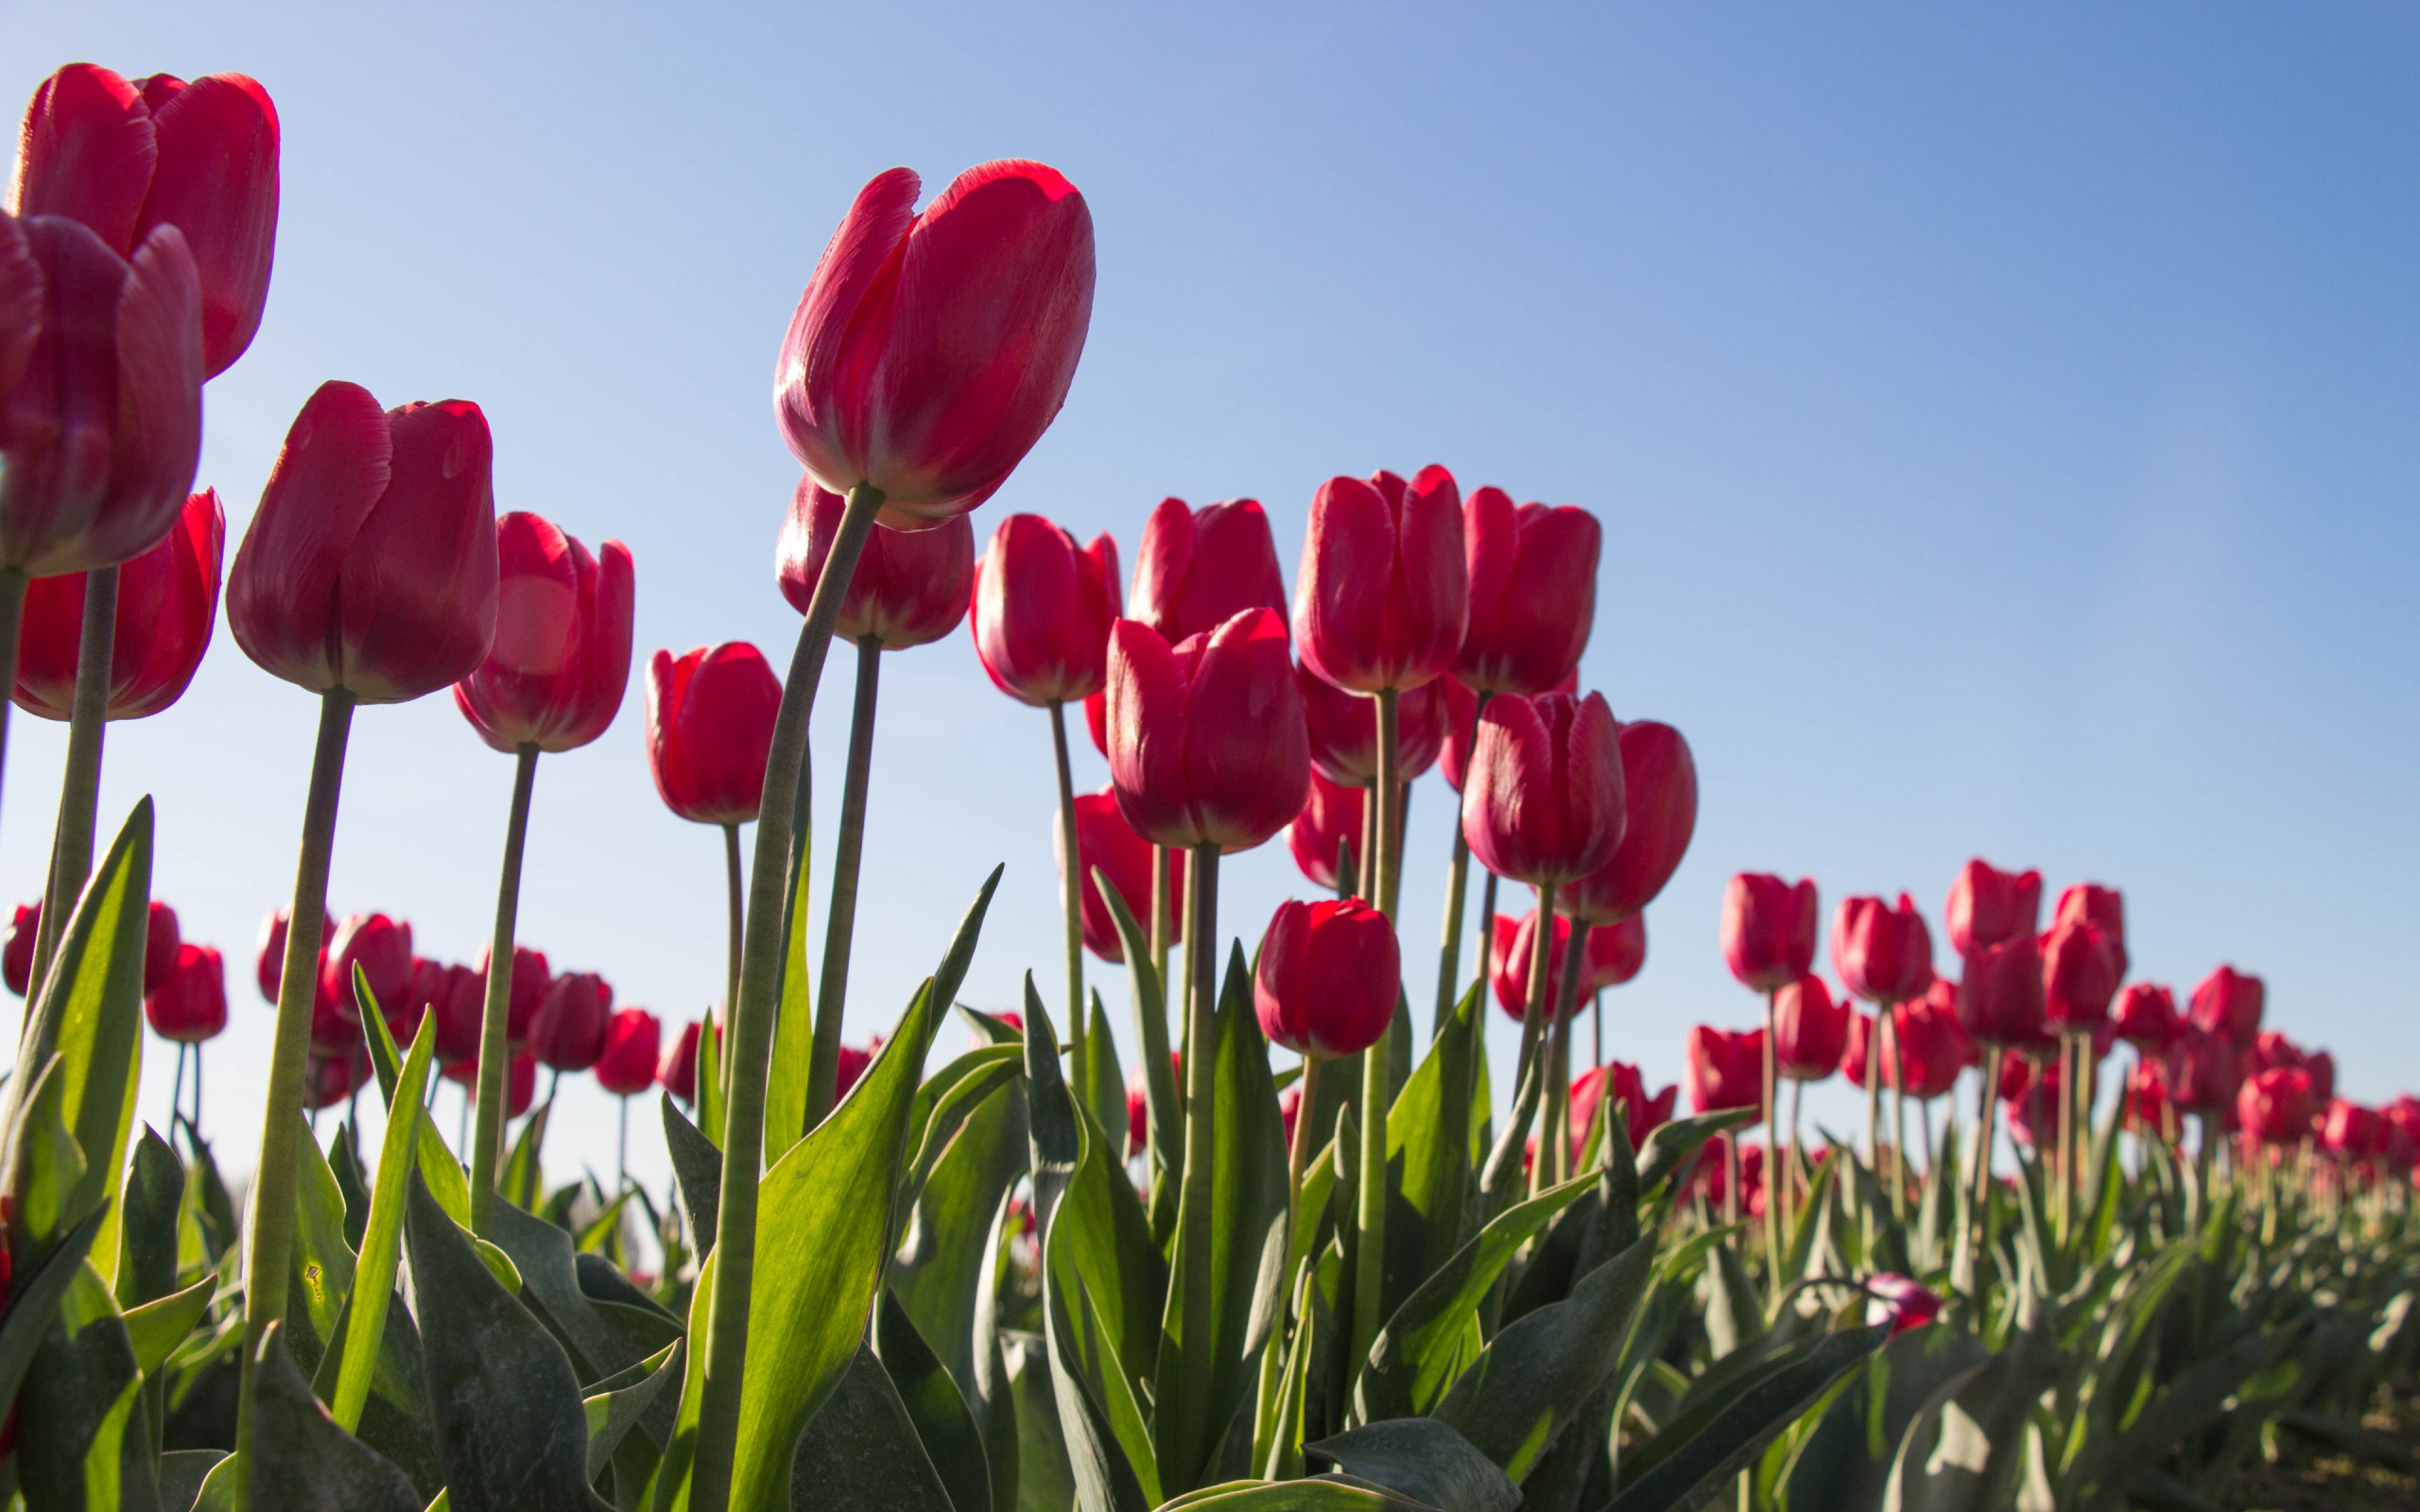 Red tulips wallpaper 2560x1600